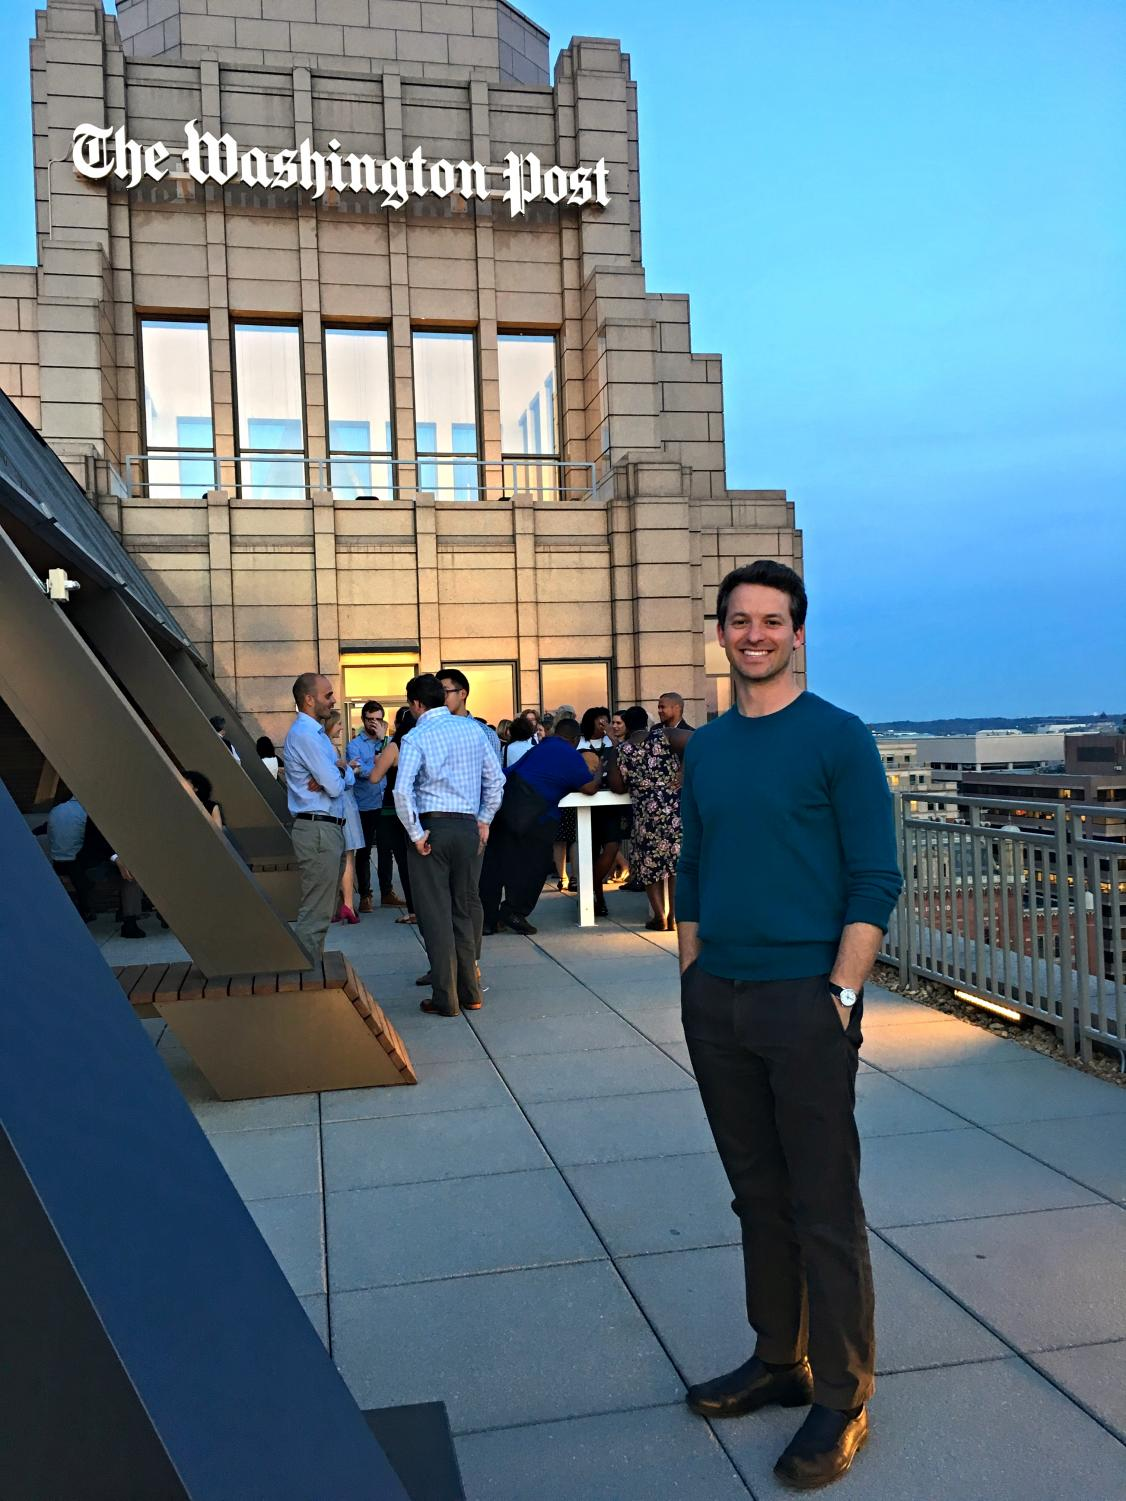 Pincus-Roth poses on the roof of the Washington Post building.